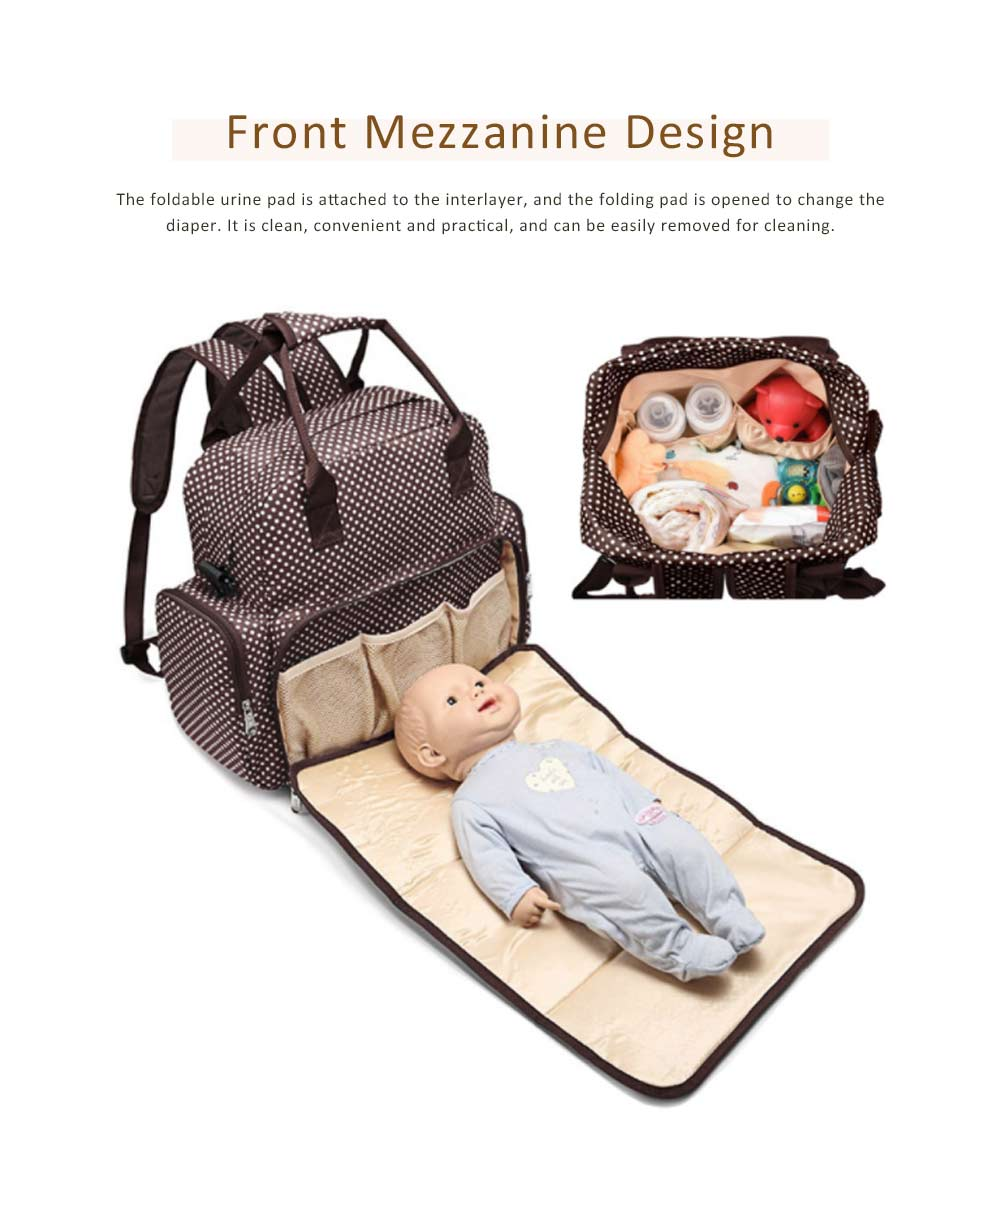 Oxford Cloth Diaper Bag Backpack for Maternal Pregnant, Travel Rucksack Casual Fashion Mummy Bag With Changing Mat 3